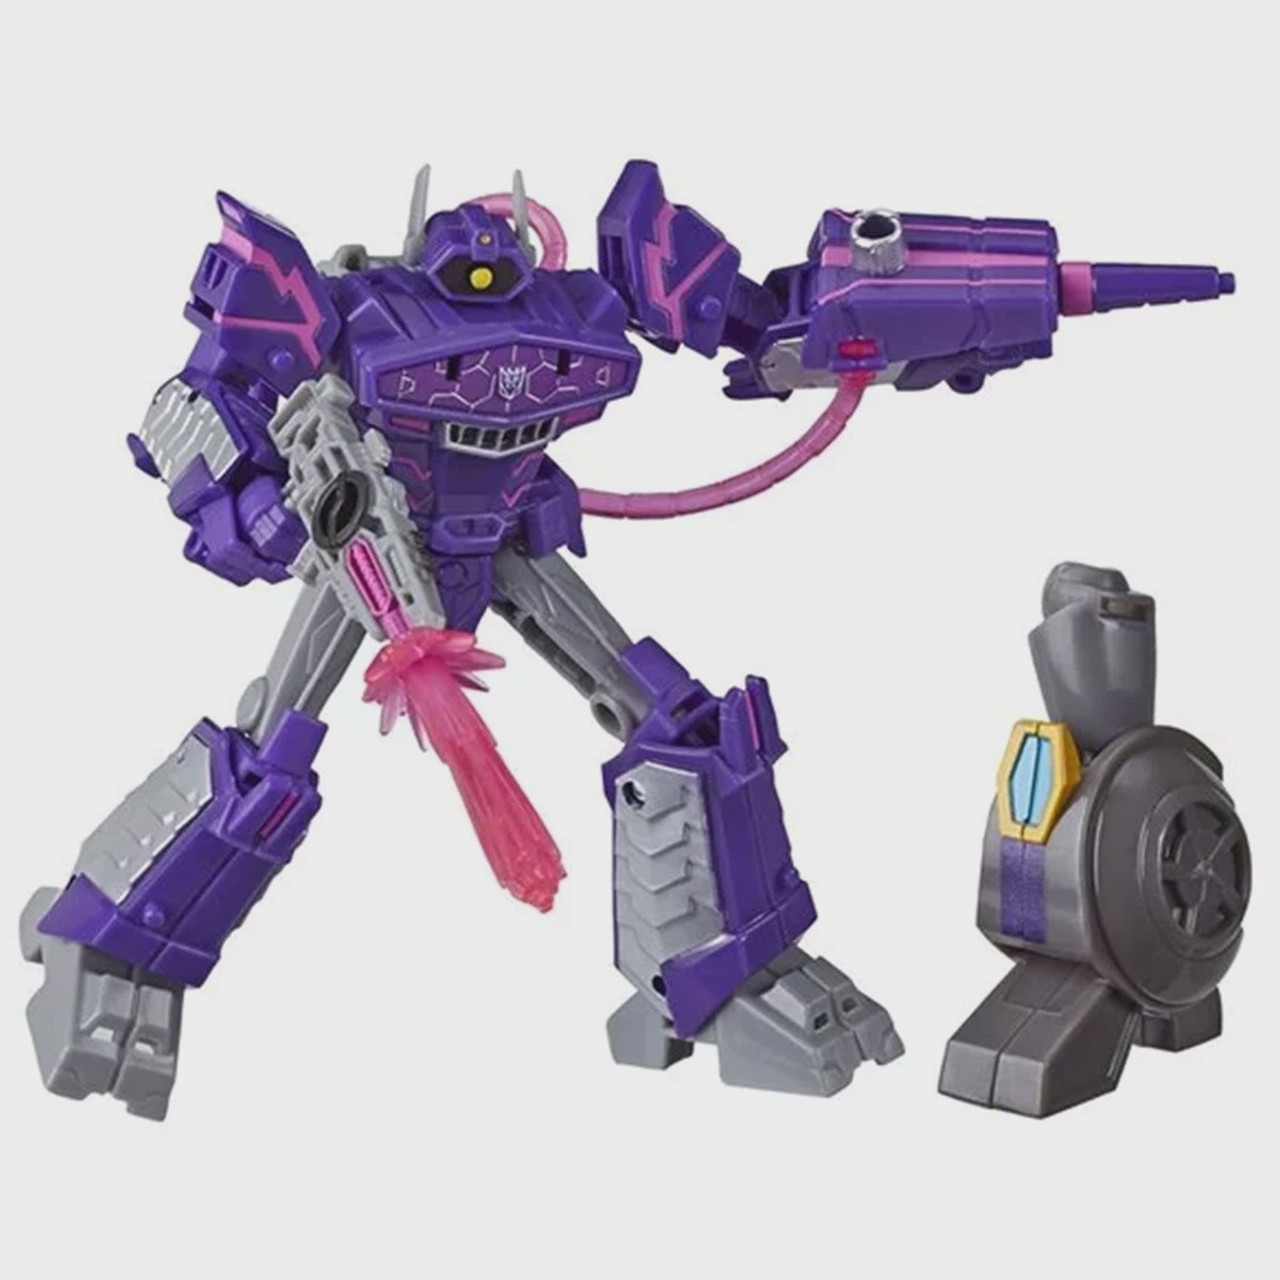 TRANSFORMERS CYBERVERSE ADVENTURES SHOCKWAVE